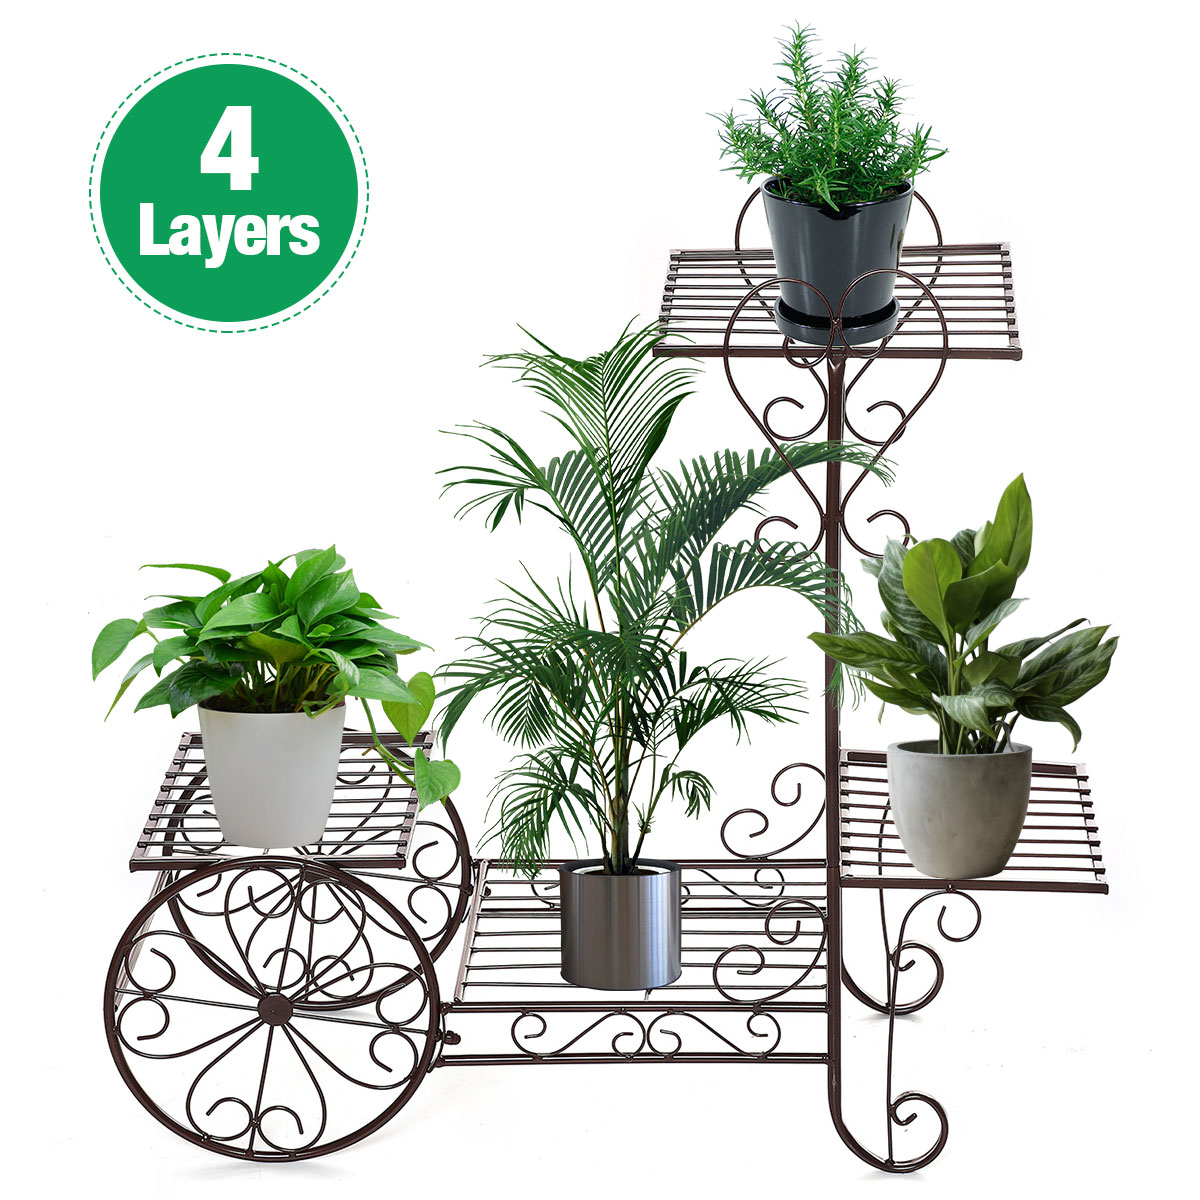 European 4 Layers Plants Stand Flower Rack Metal Flower Stand Indoor Plant Shelves Multi-story Outdoor Metal Floor Shelf Balcony